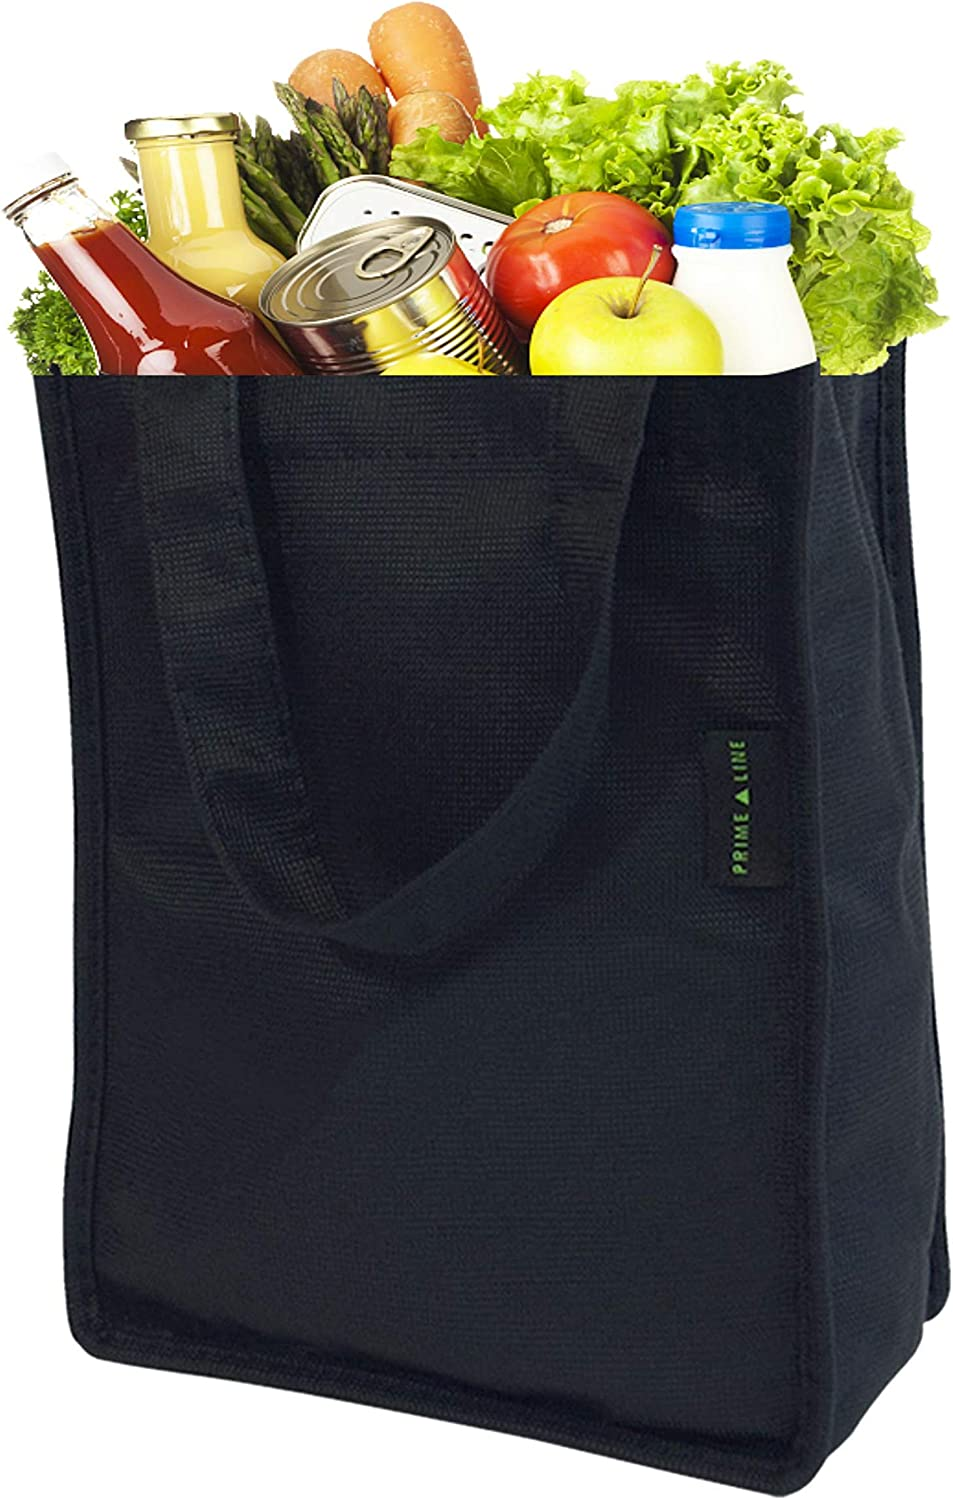 Black Reusable Grocery Bags Made From Recycled Plastic Bottles